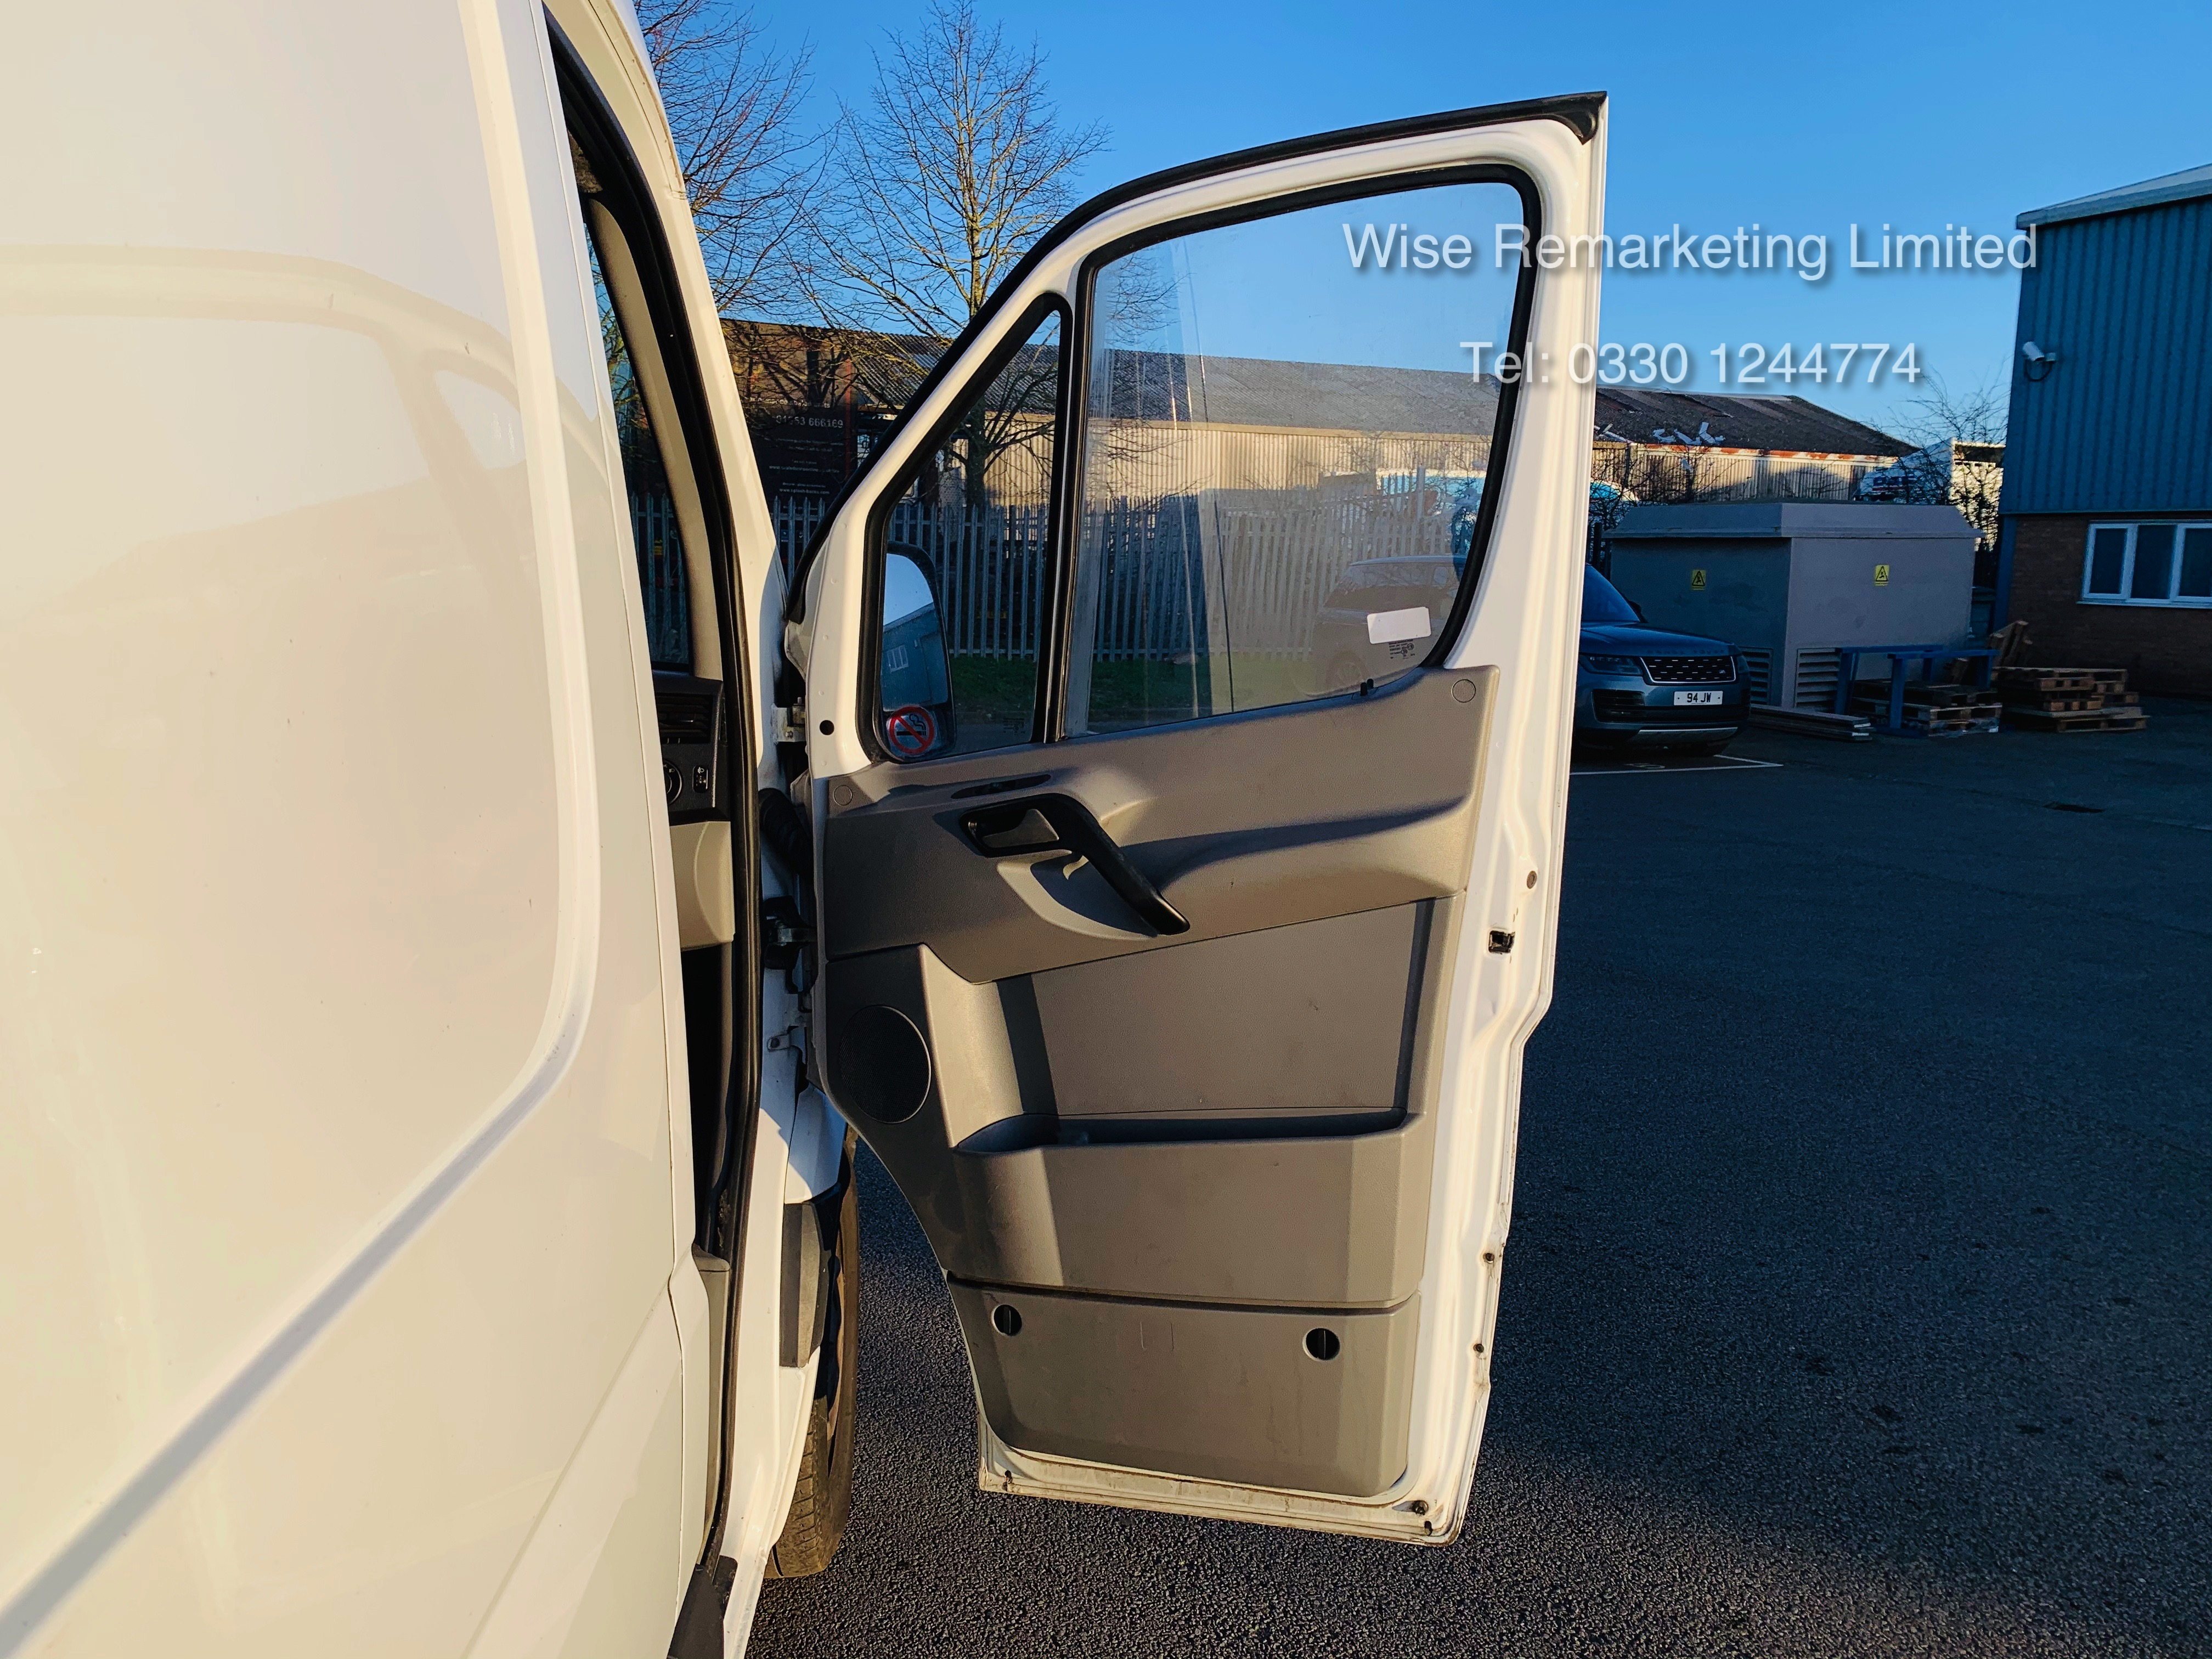 Mercedes Sprinter 316 2.1 CDI Long Wheel Base High Roof Van - 2013 13 Reg - 1 Owner From New - Image 13 of 20